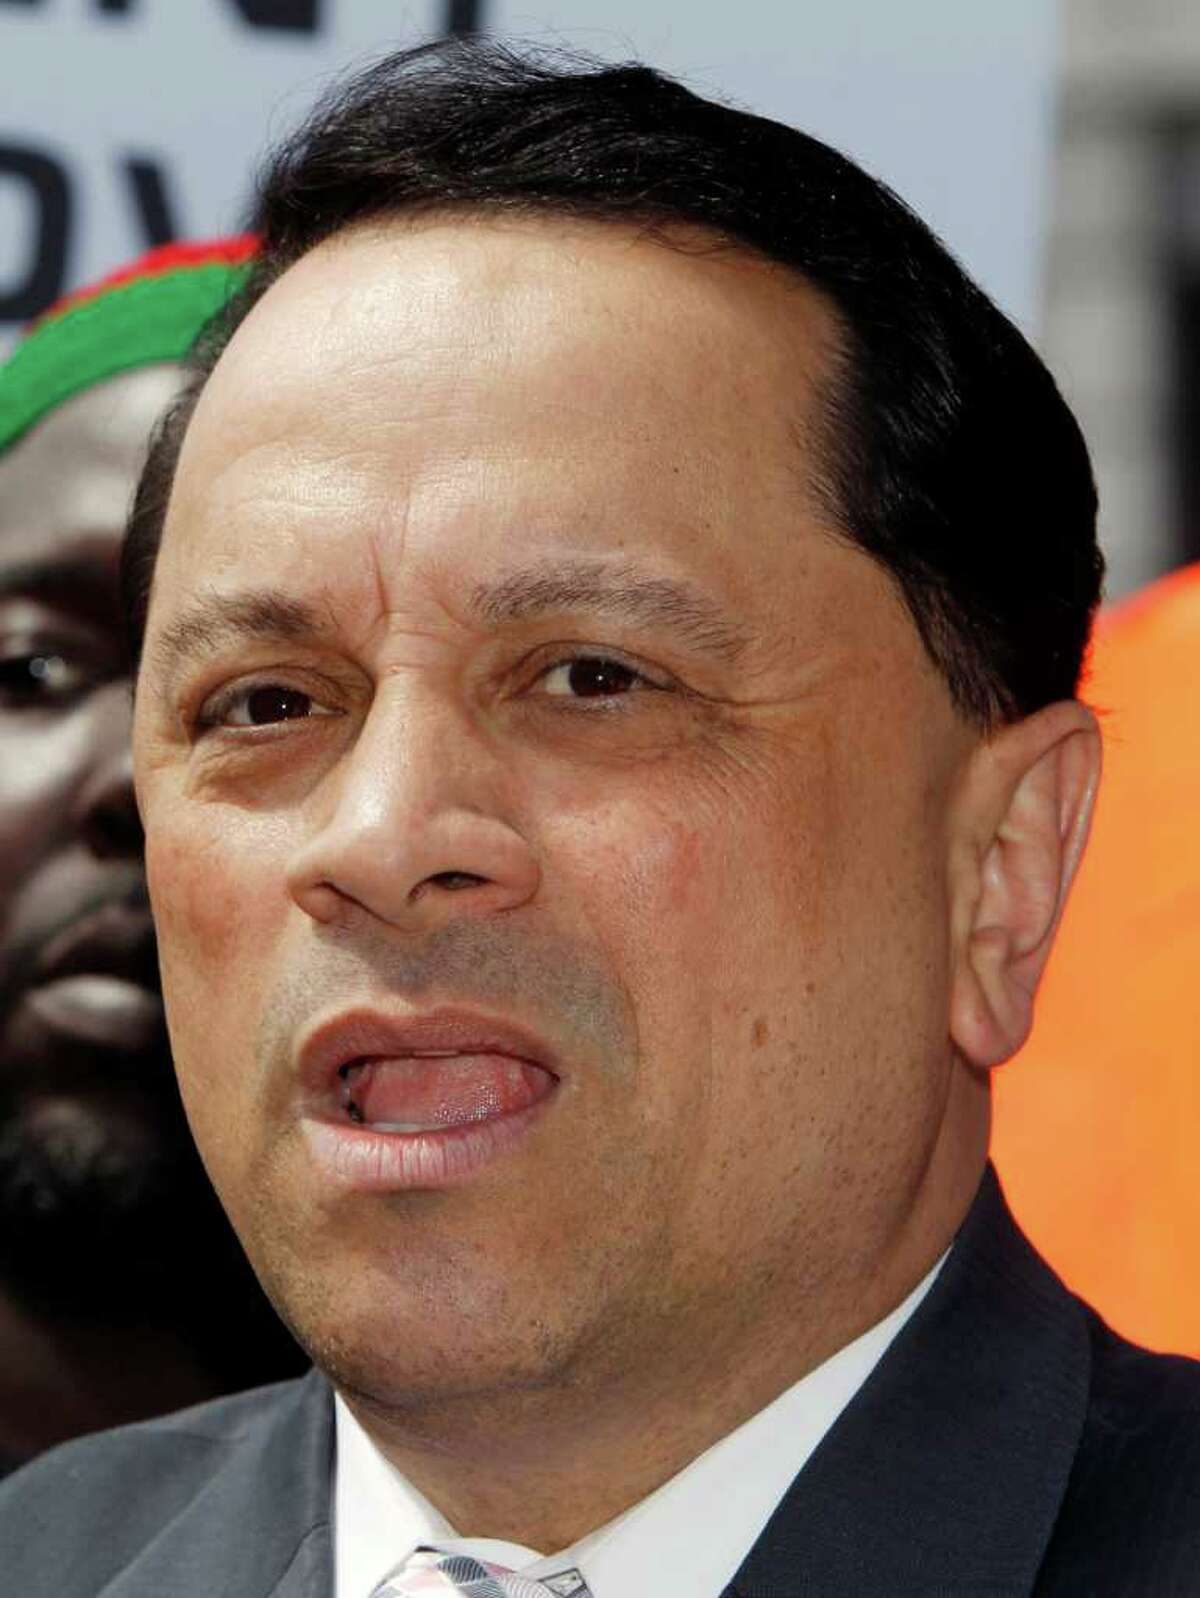 Fformer state senator Pedro Espada Jr. speaks at a rally in Albany, N.Y. in this 2010 file photo. (AP Photo archive/Mike Groll)